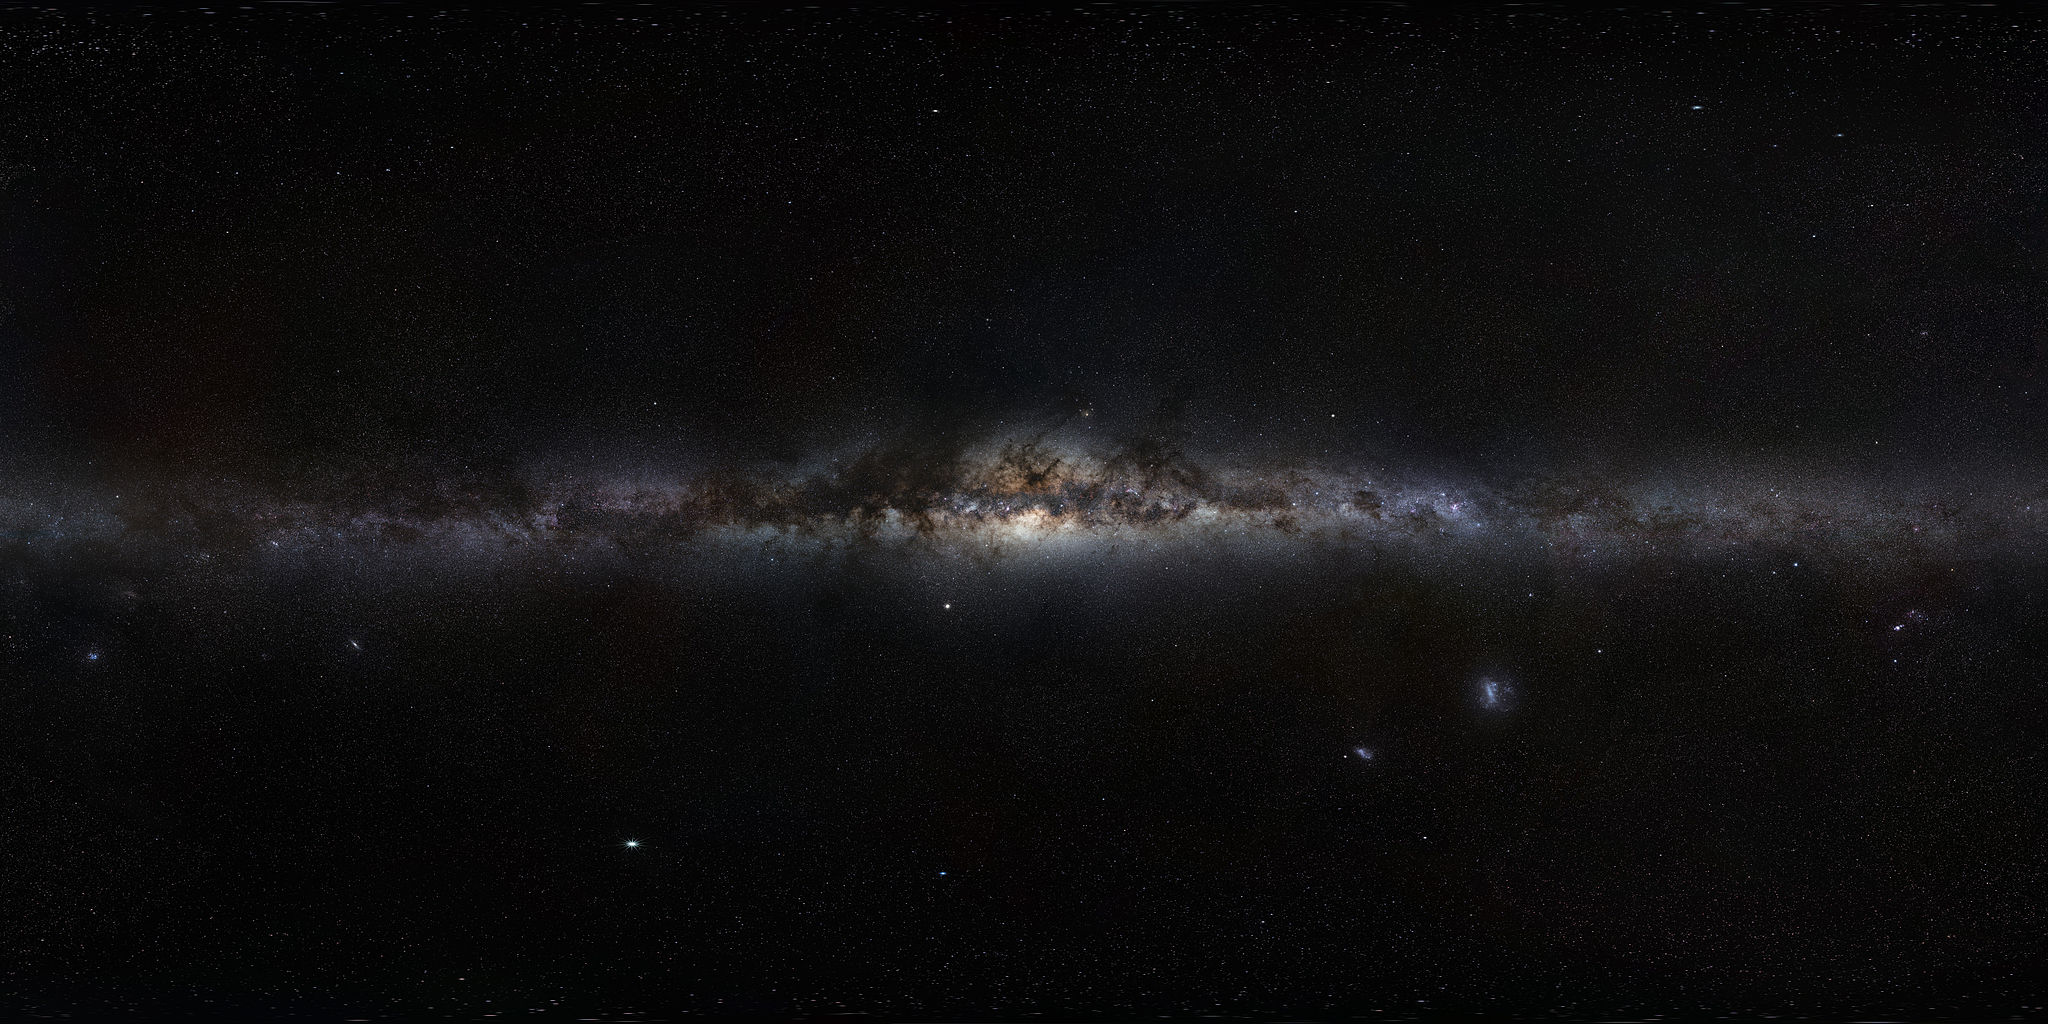 Milky Way Galaxy 19201080 HD Space Astronomy Wallpaper 2048x1024